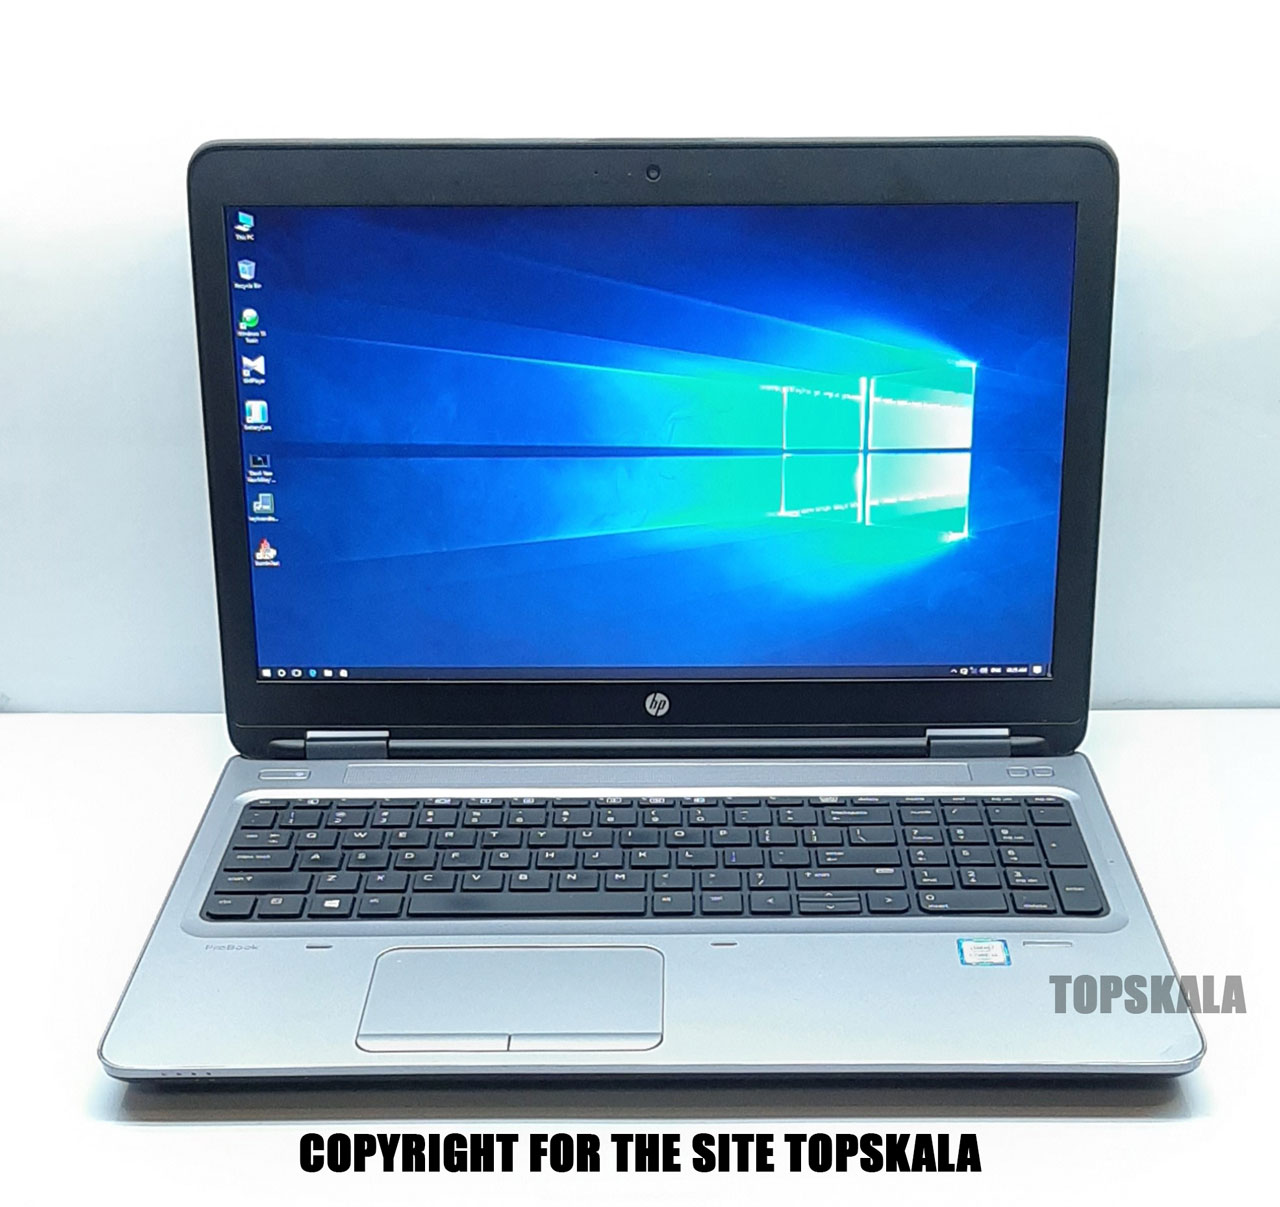 لپ تاپ استوک اچ پی مدل HP PROBOOK 650 G2 با مشخصات i5-6th-8GB-500GB-HDD-4GB-intel-HD-530laptop-stock-hp-model-probook-g2-i5-6th-8gb-500gb-4gb-intel-hd-530